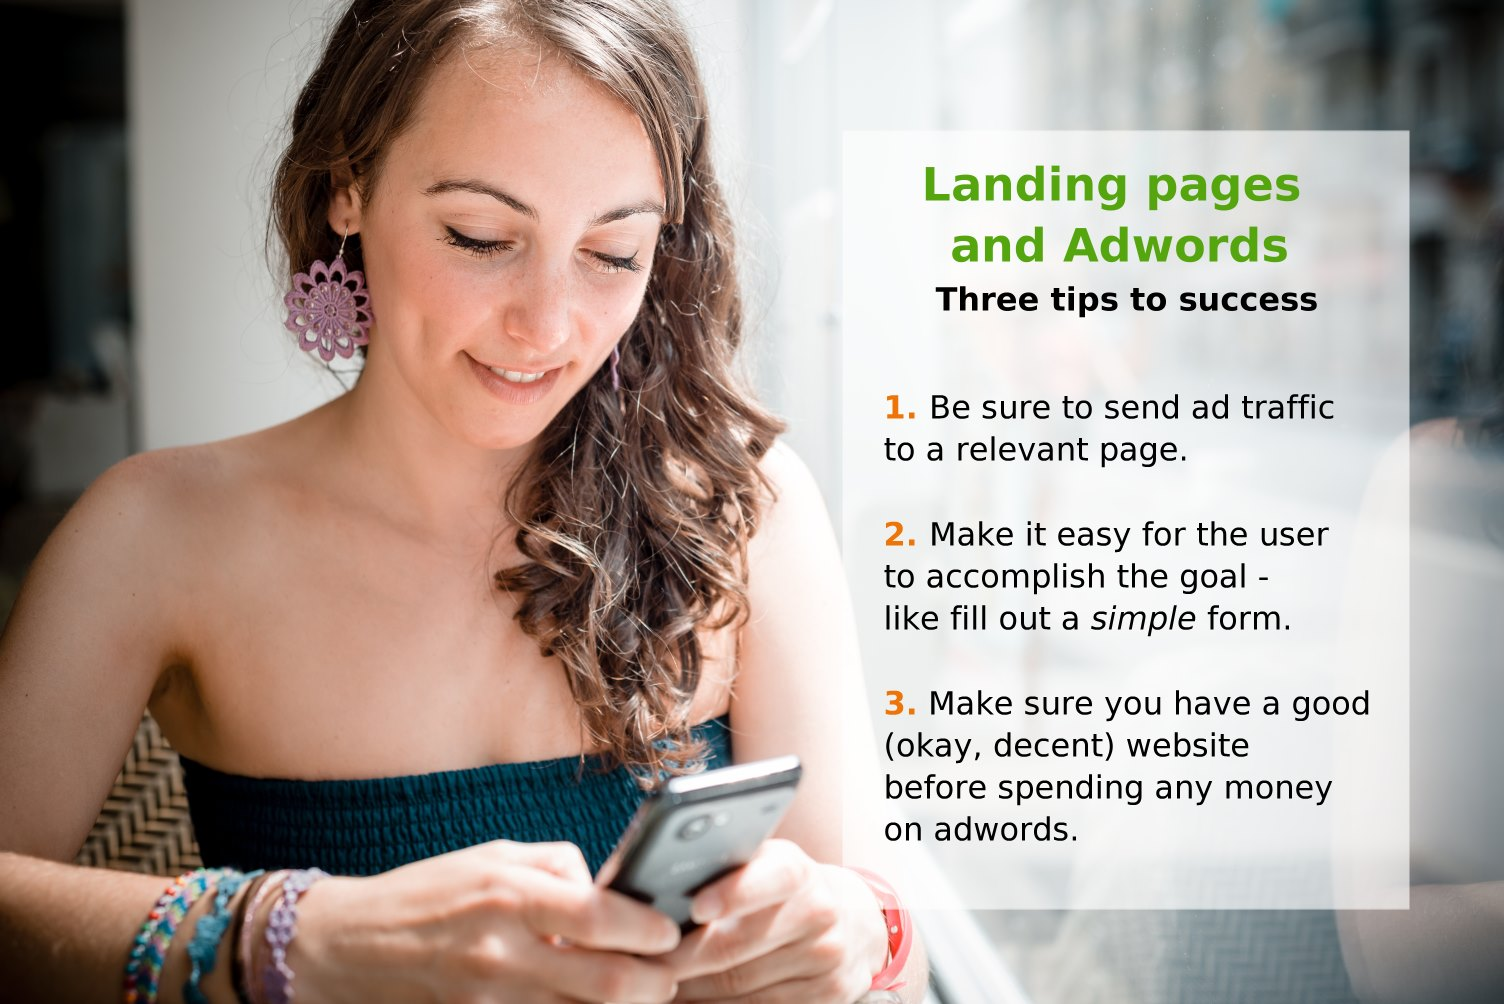 Landing pages and adwords